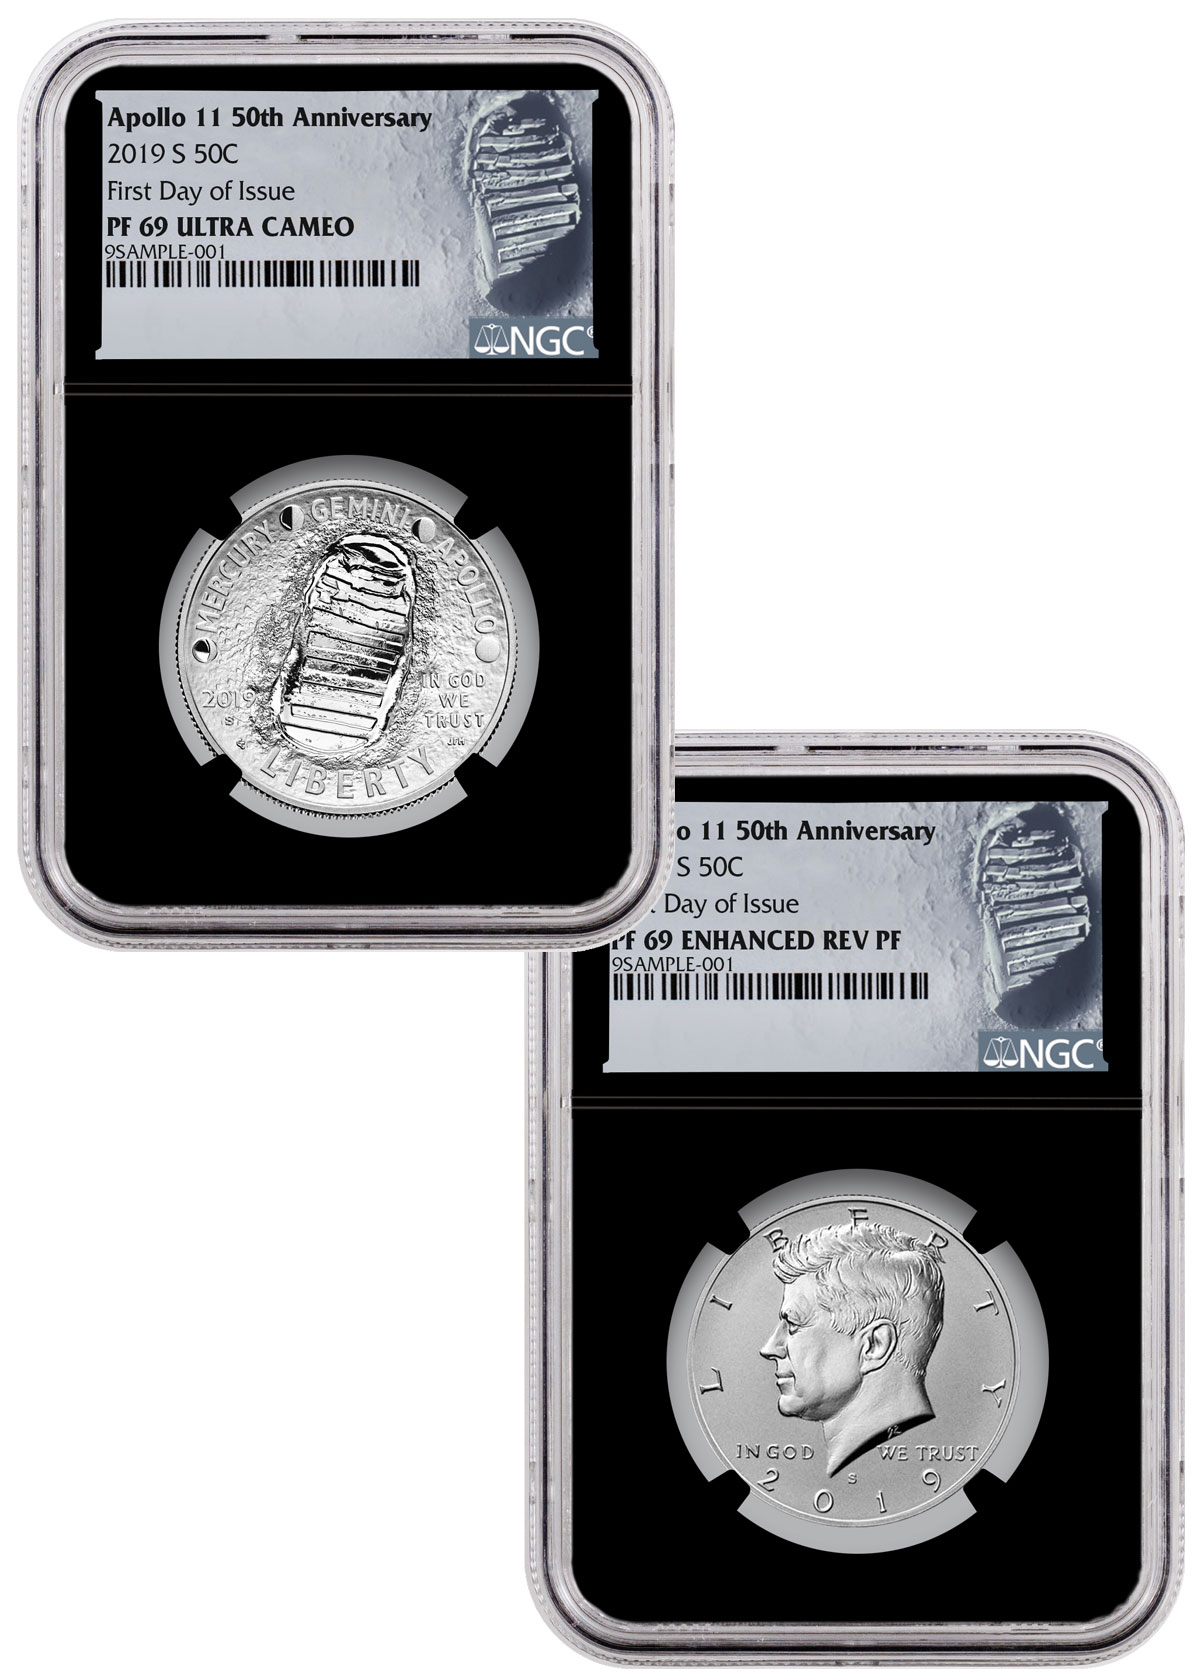 2019 S 50C PROOF APOLLO 11 HALF DOLLAR PCGS PR69 FIRST DAY OF ISSUE FDI LABEL